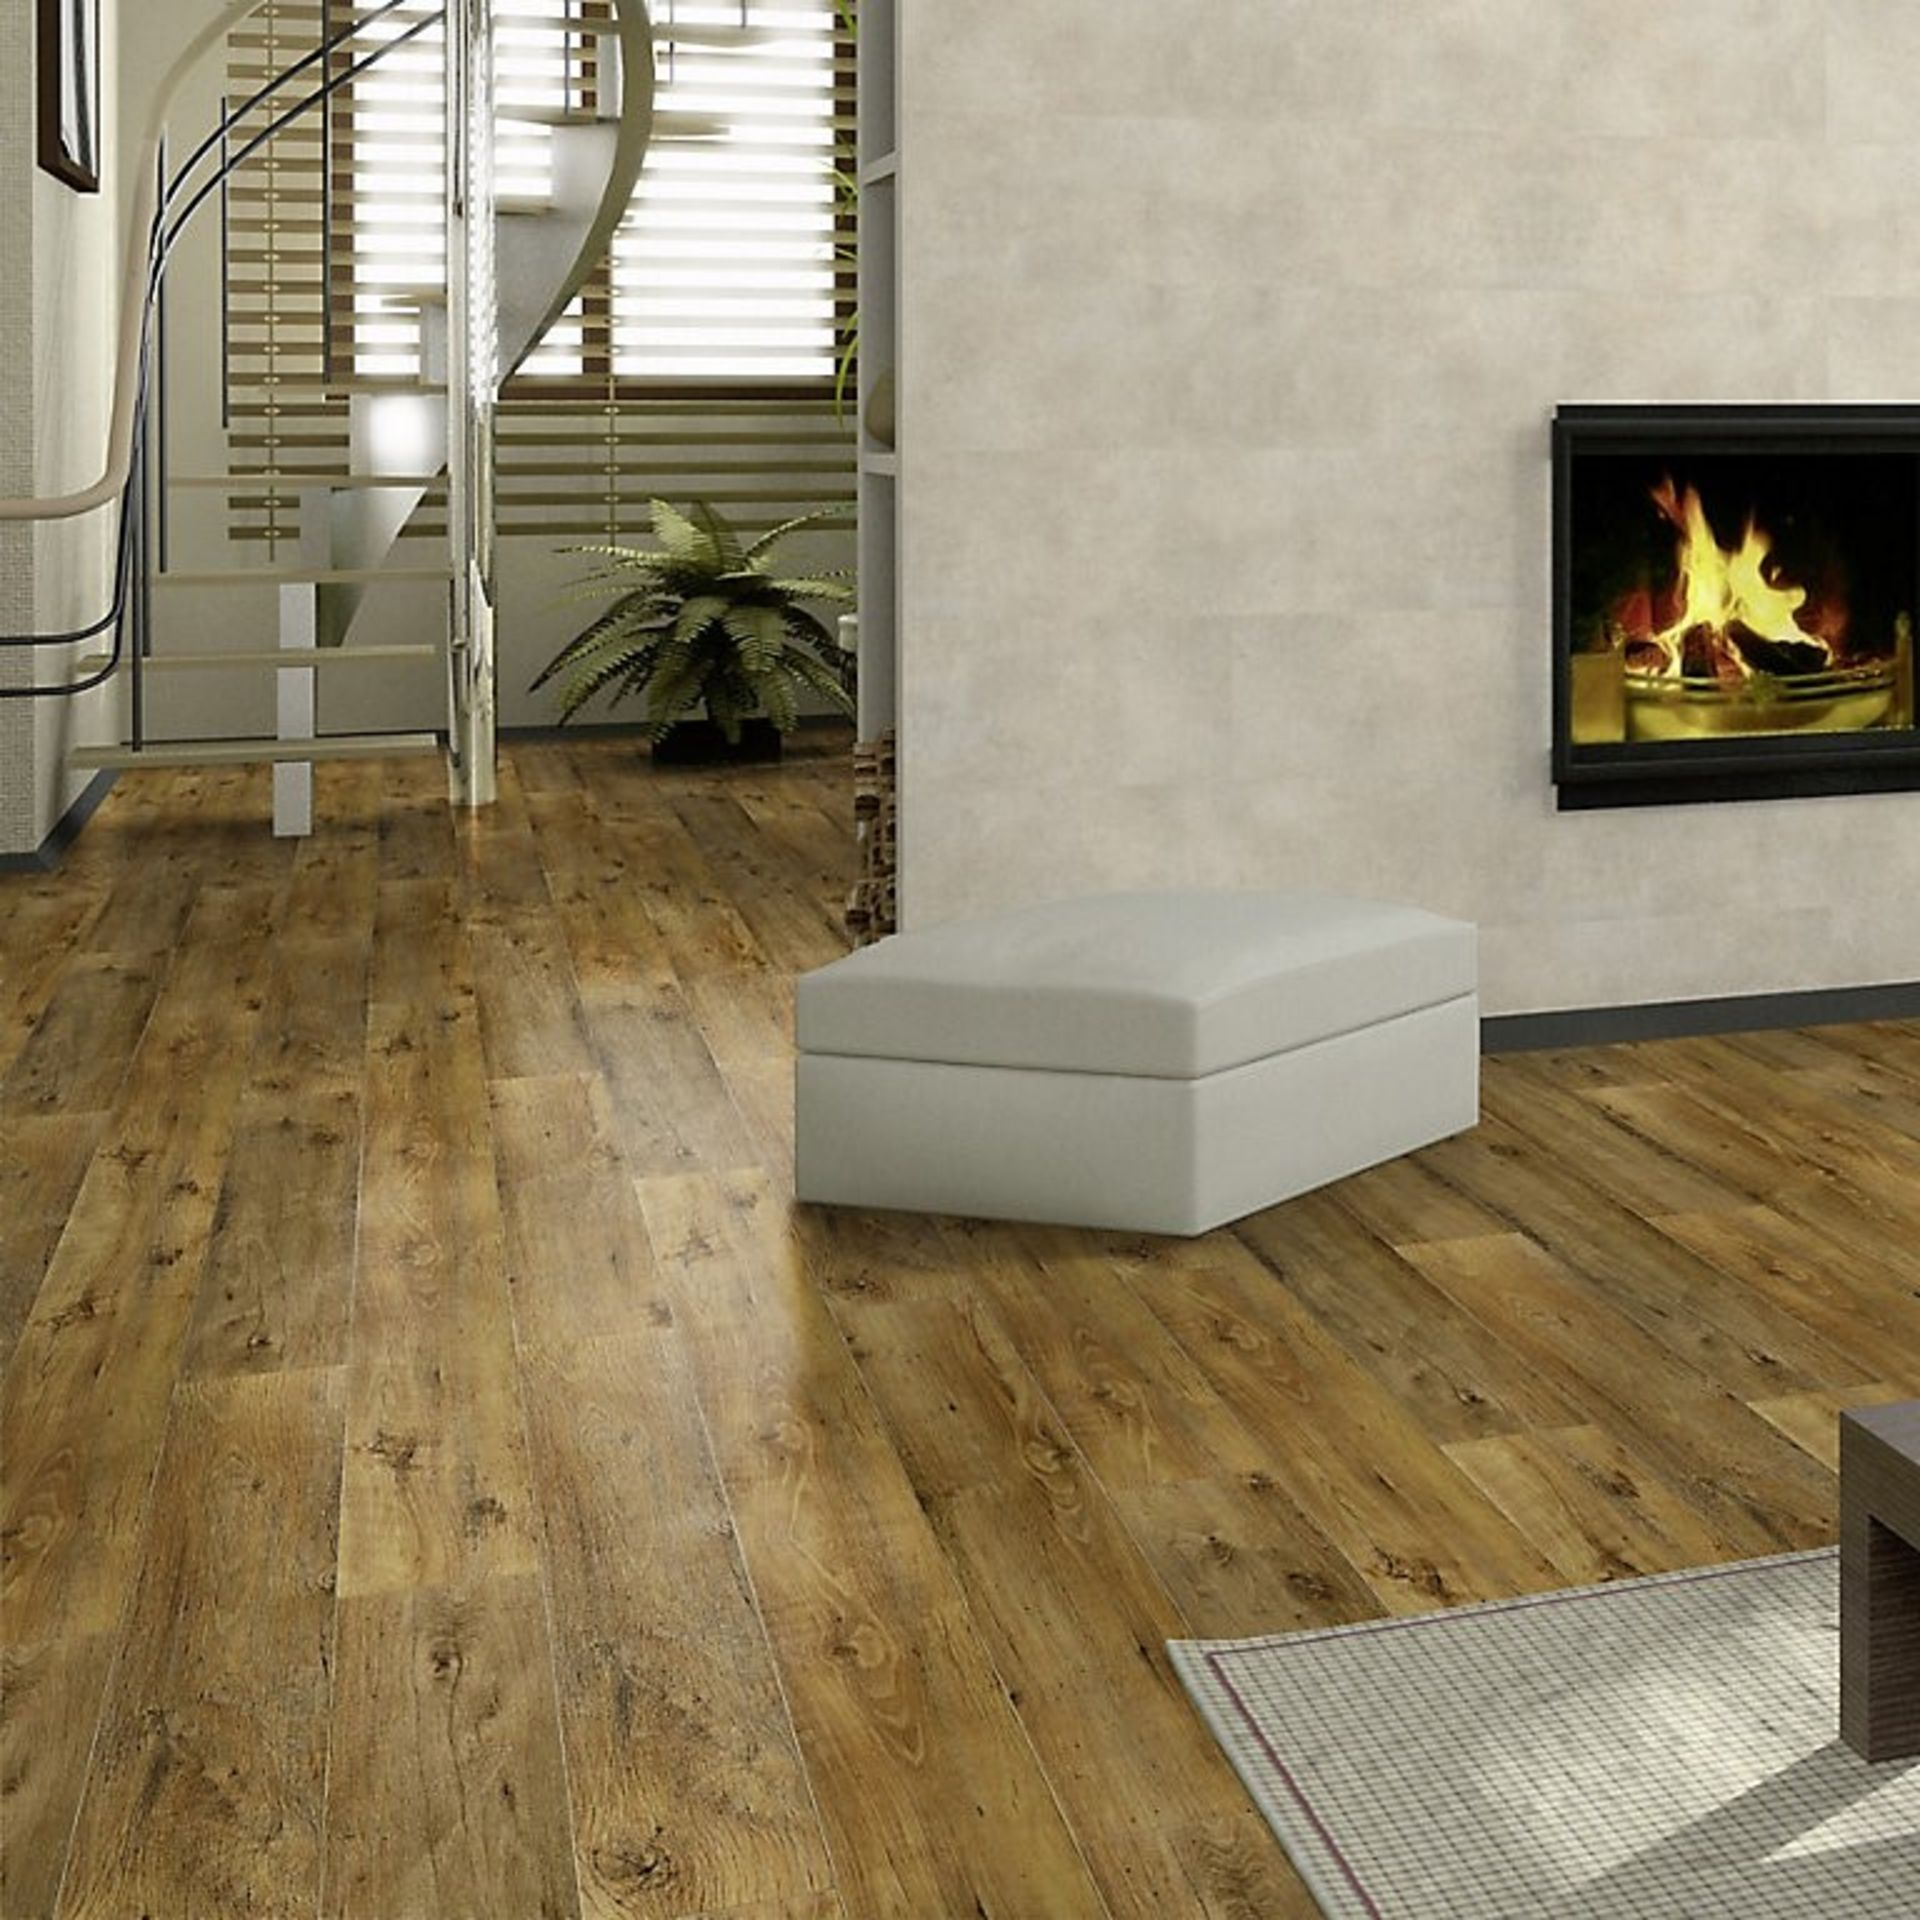 NEW 18.5M2 Arpeggio Tuscany Olive 2 Strip Effect Laminate Flooring. Drop lick fitting, 4 sided